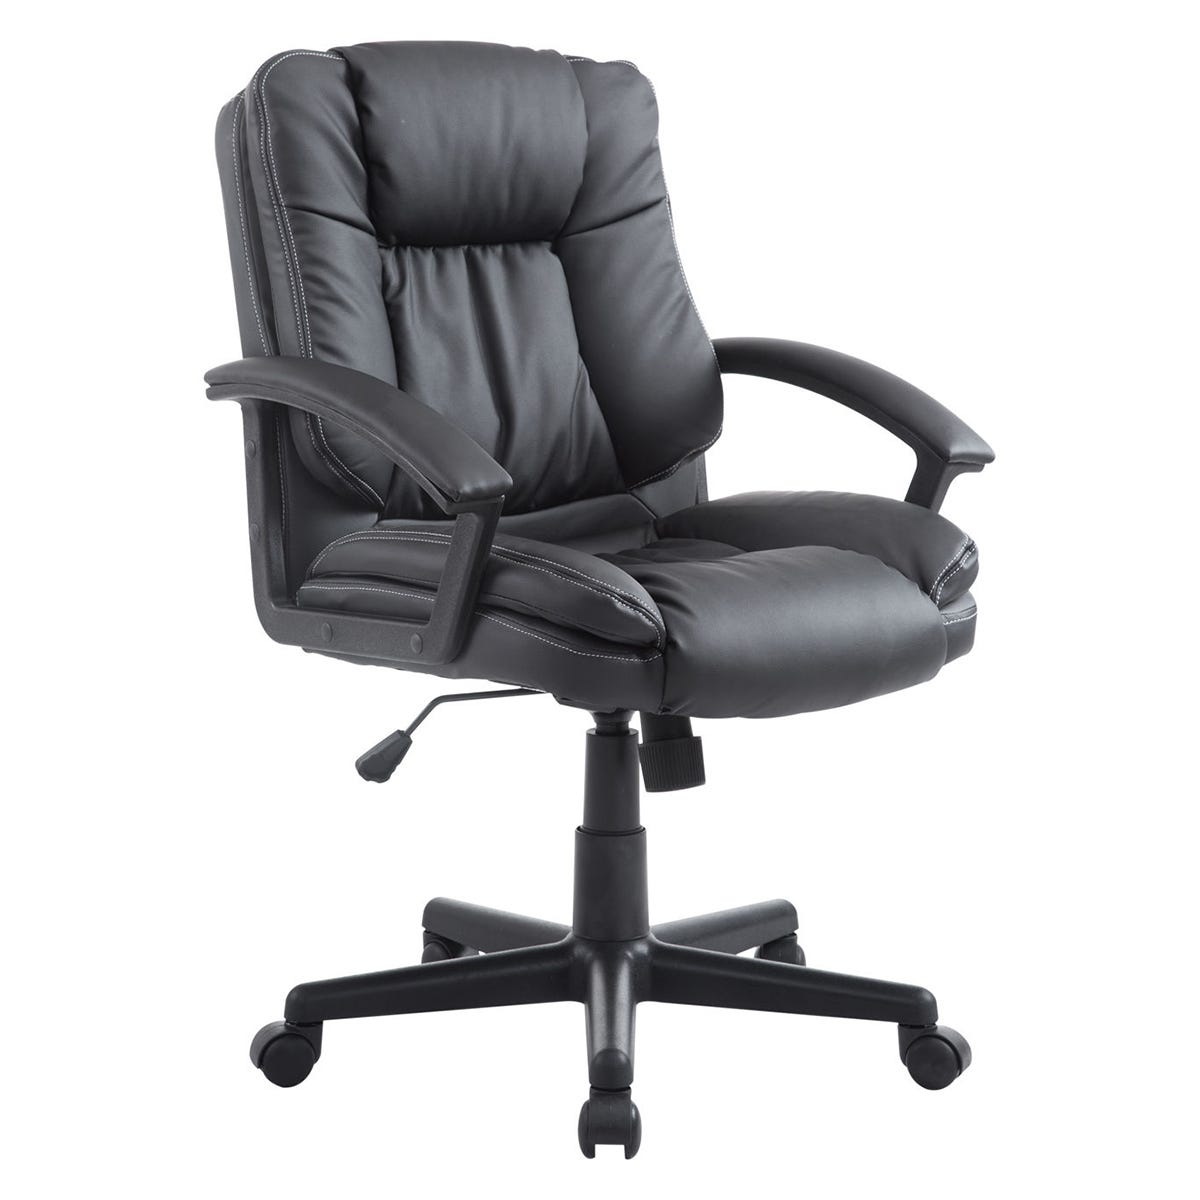 Zennor Mugo PU Leather Low Back Office Chair - Black